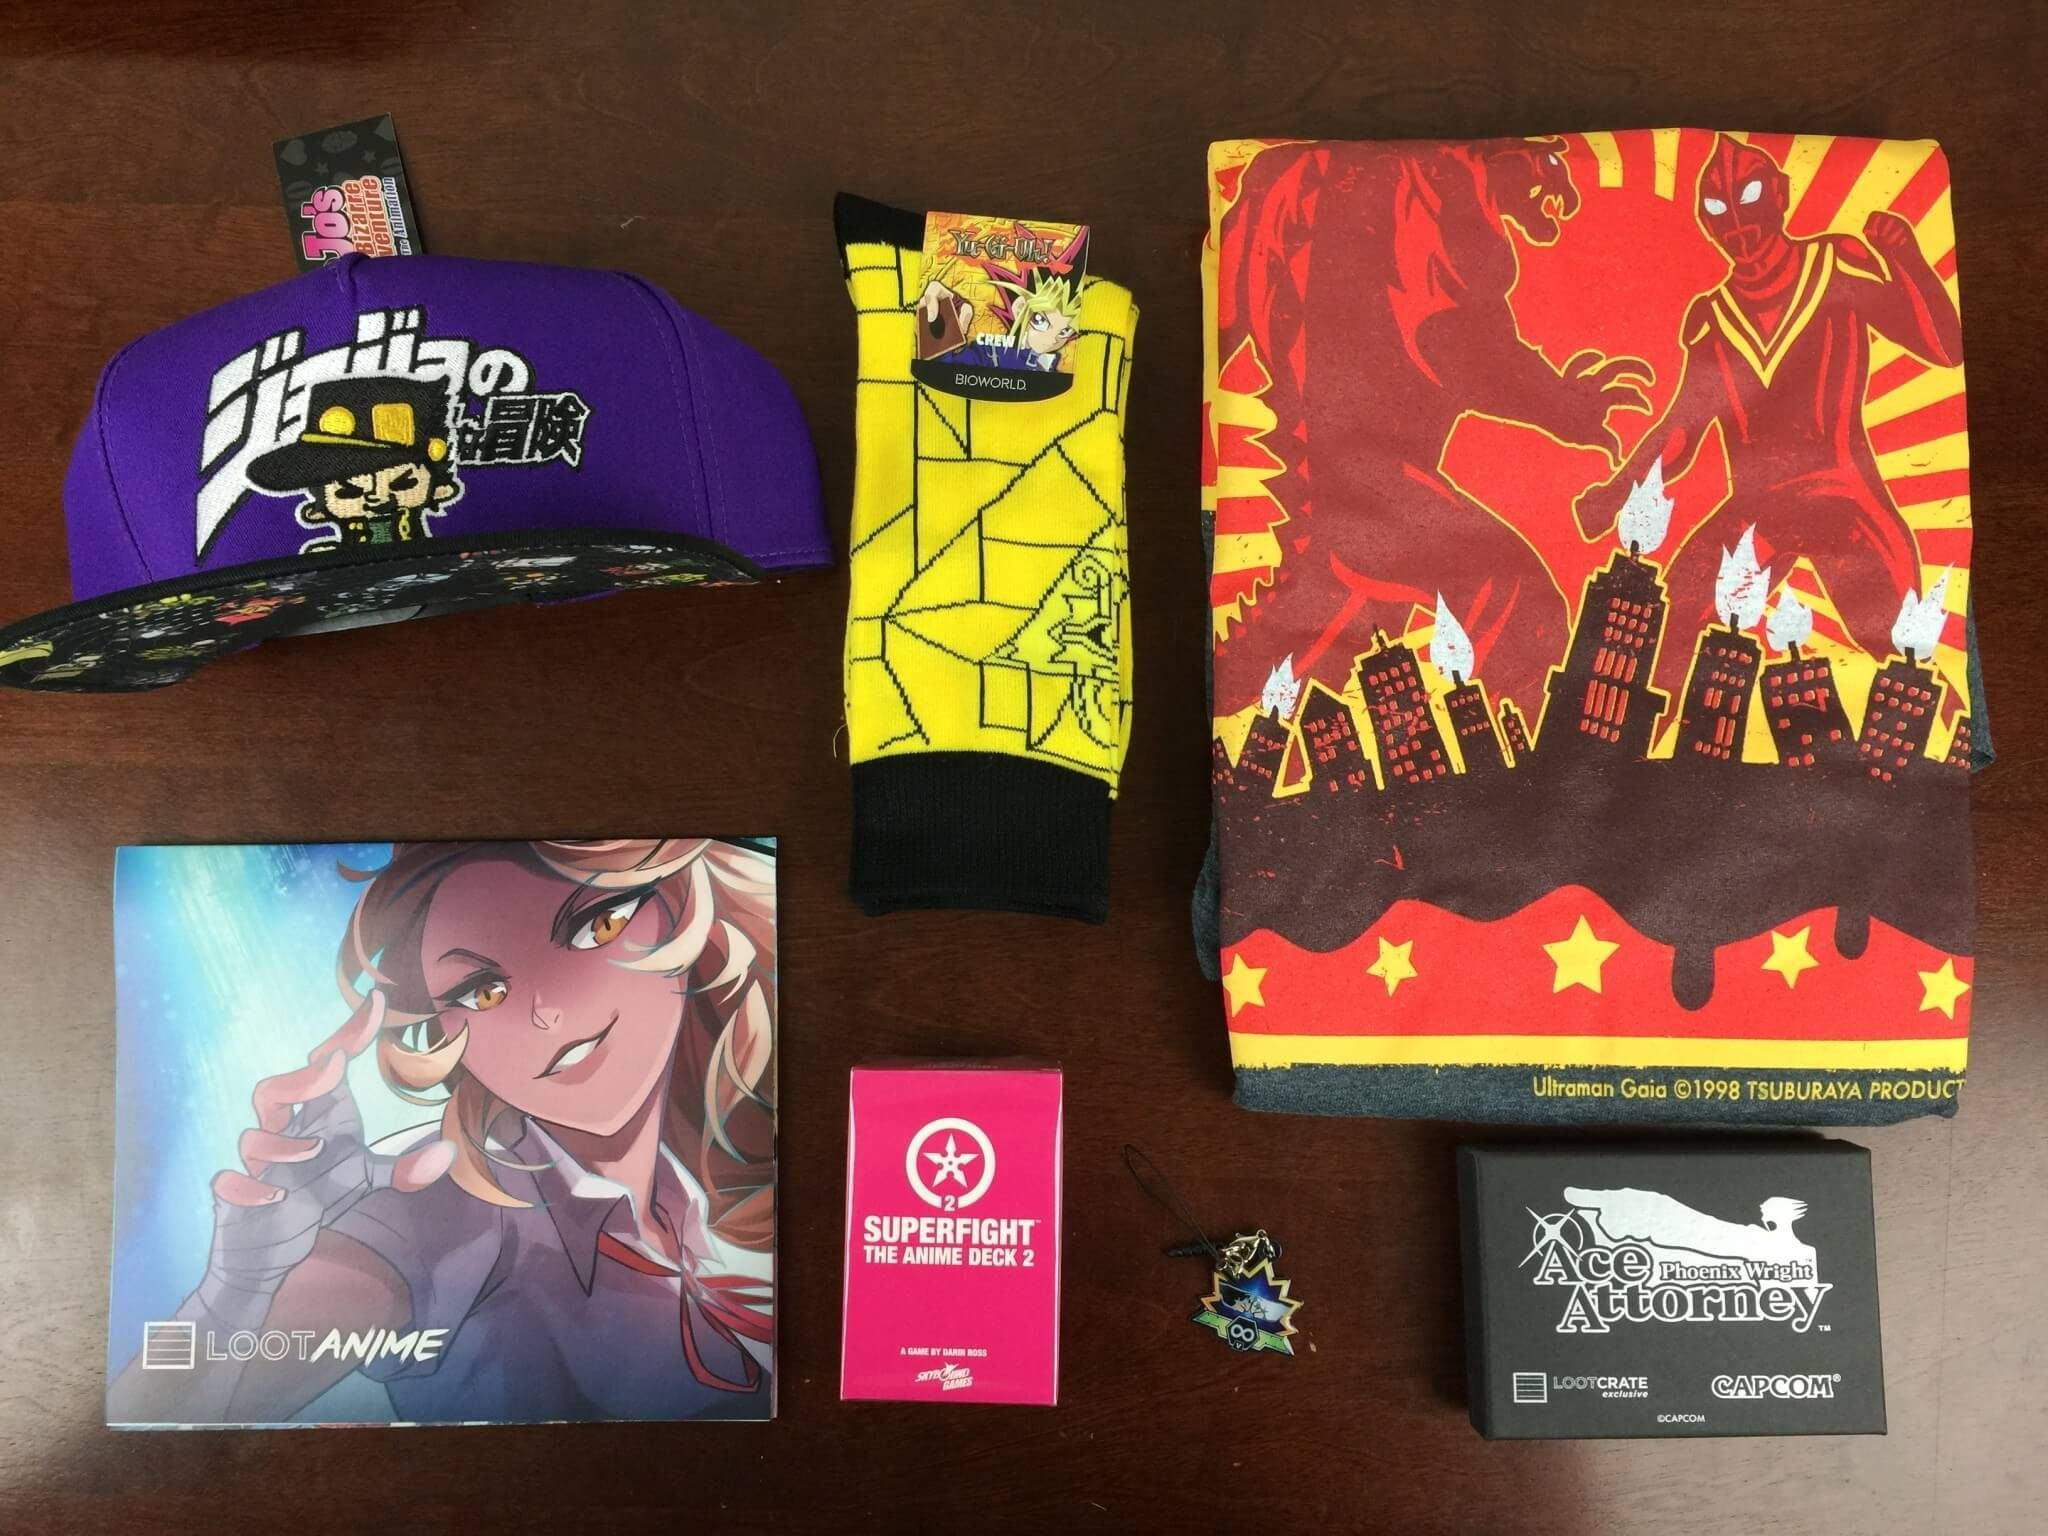 Loot anime anime subscription boxes subscription box